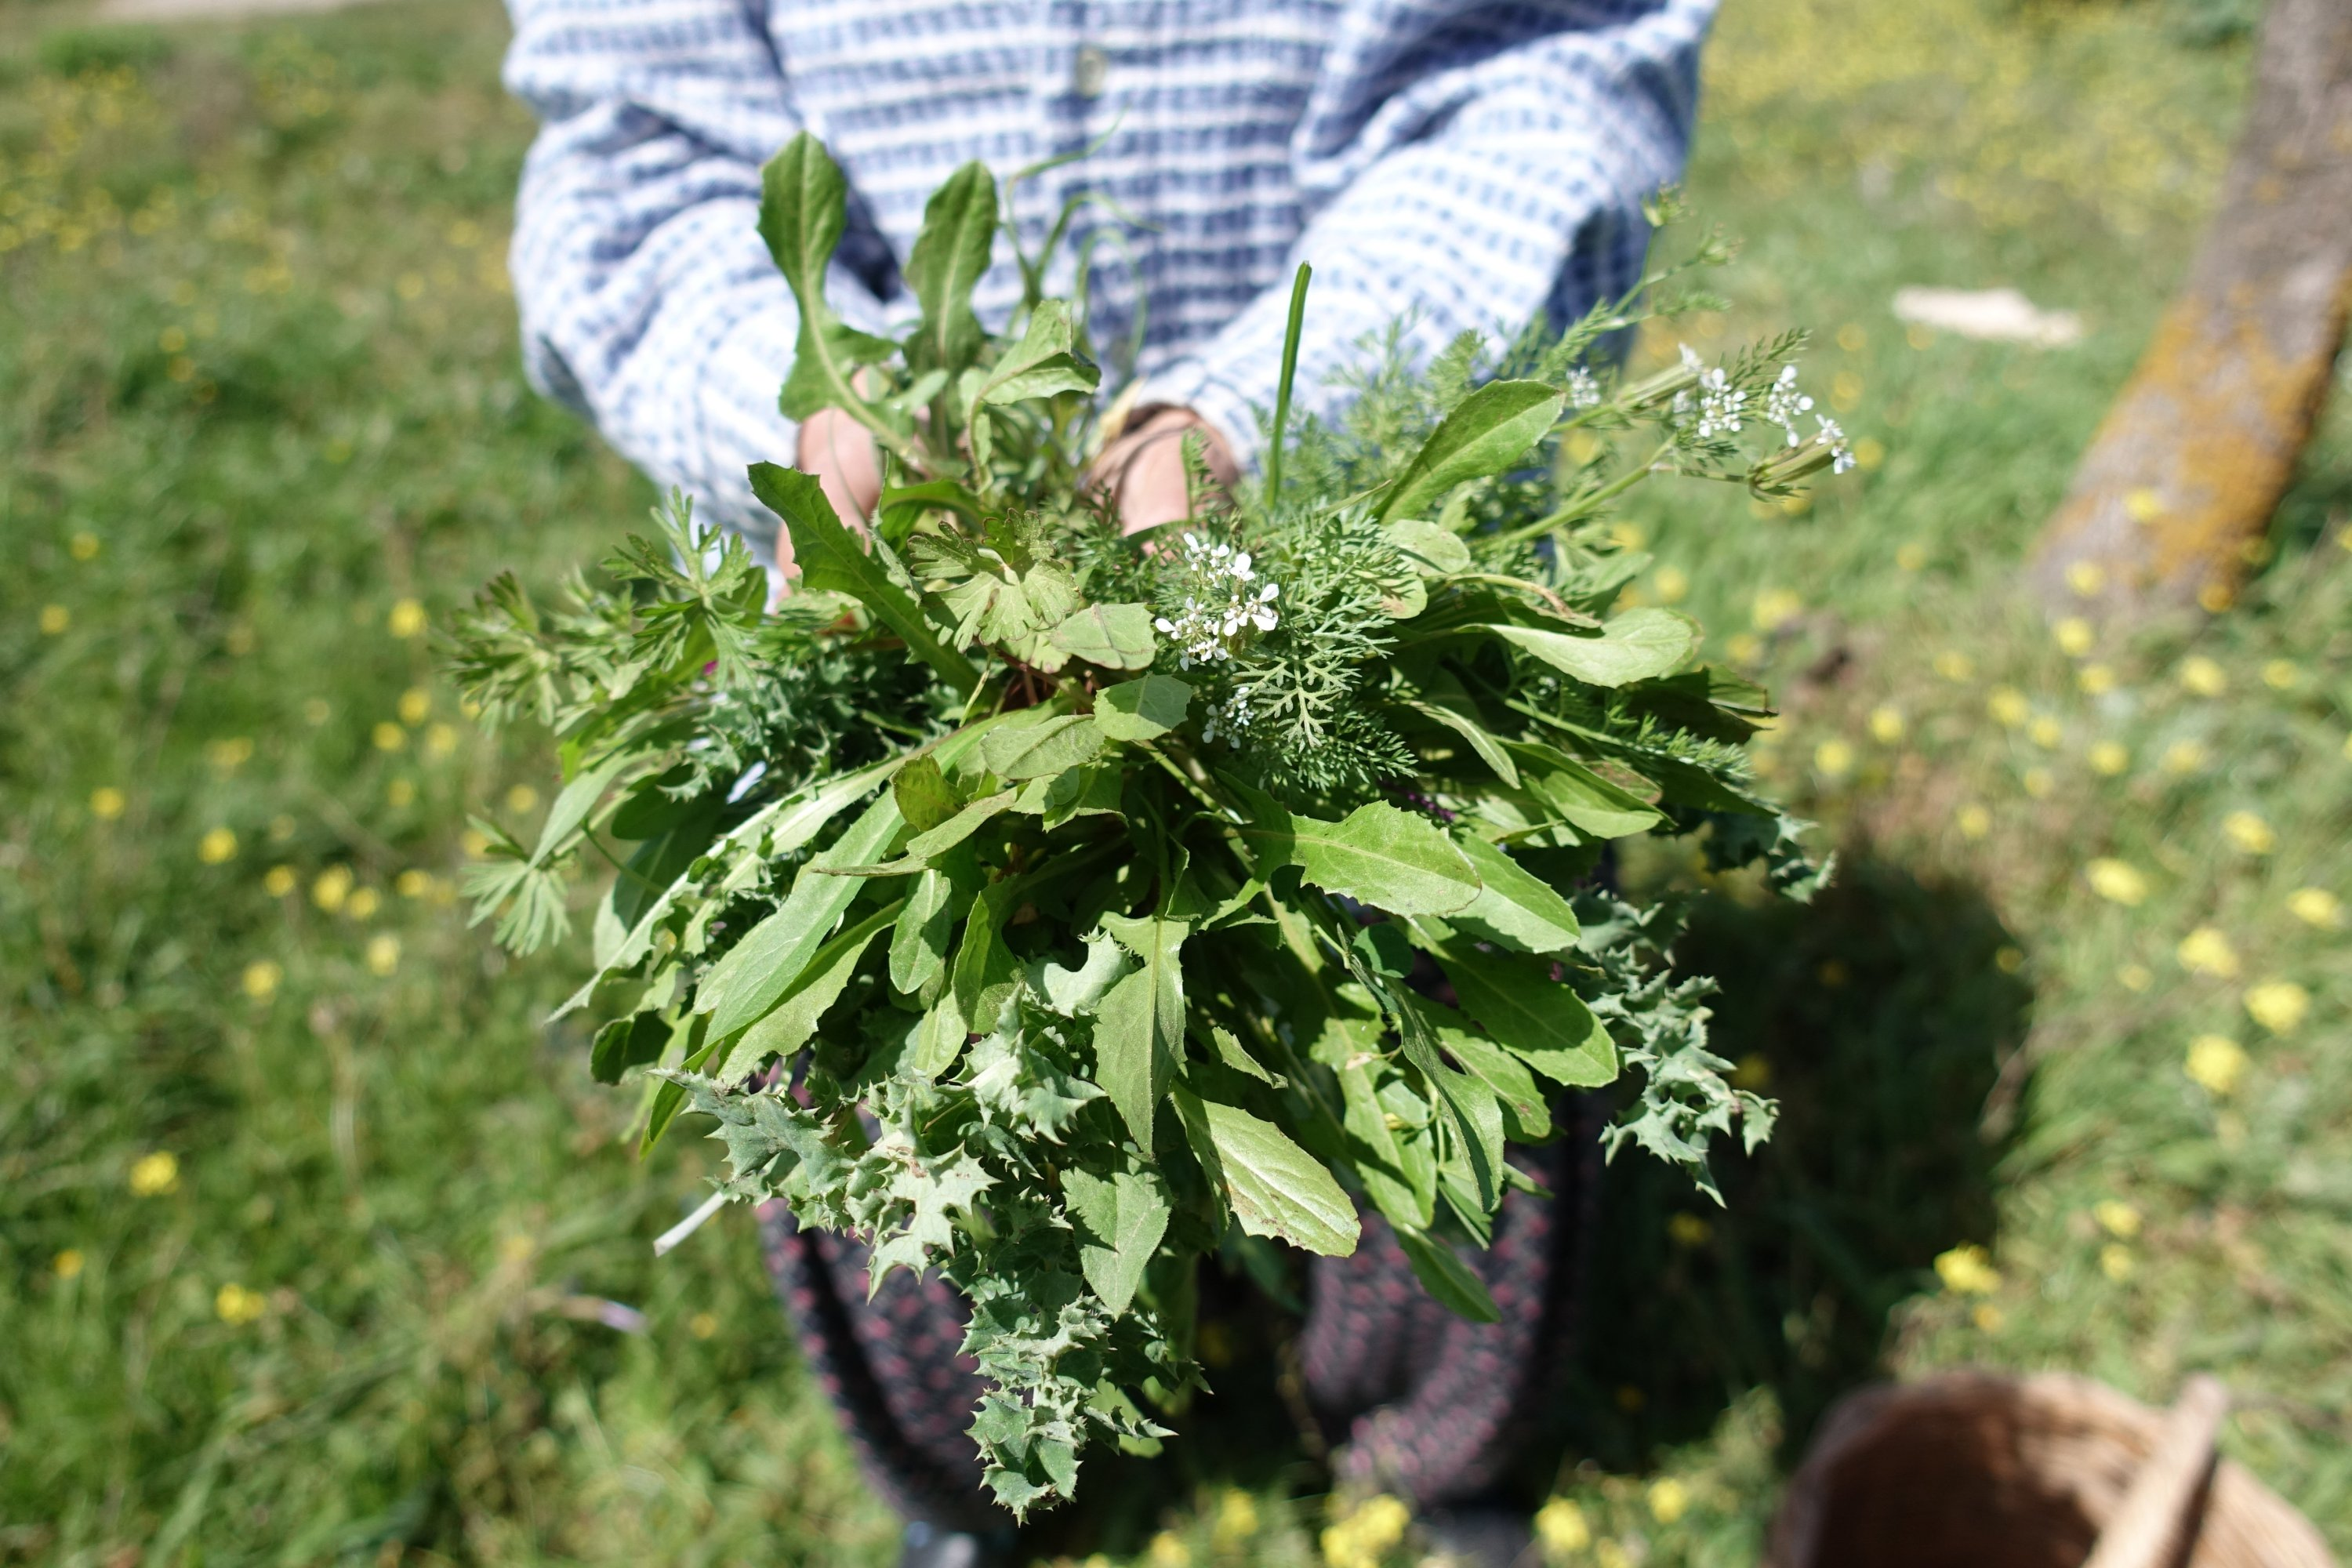 The Alaçatı Herb Festival showcases local delights such as chicory, wild radish, mustard greens, stinging nettles and şevketibostan (cnicus) among many others. (AA Photo)